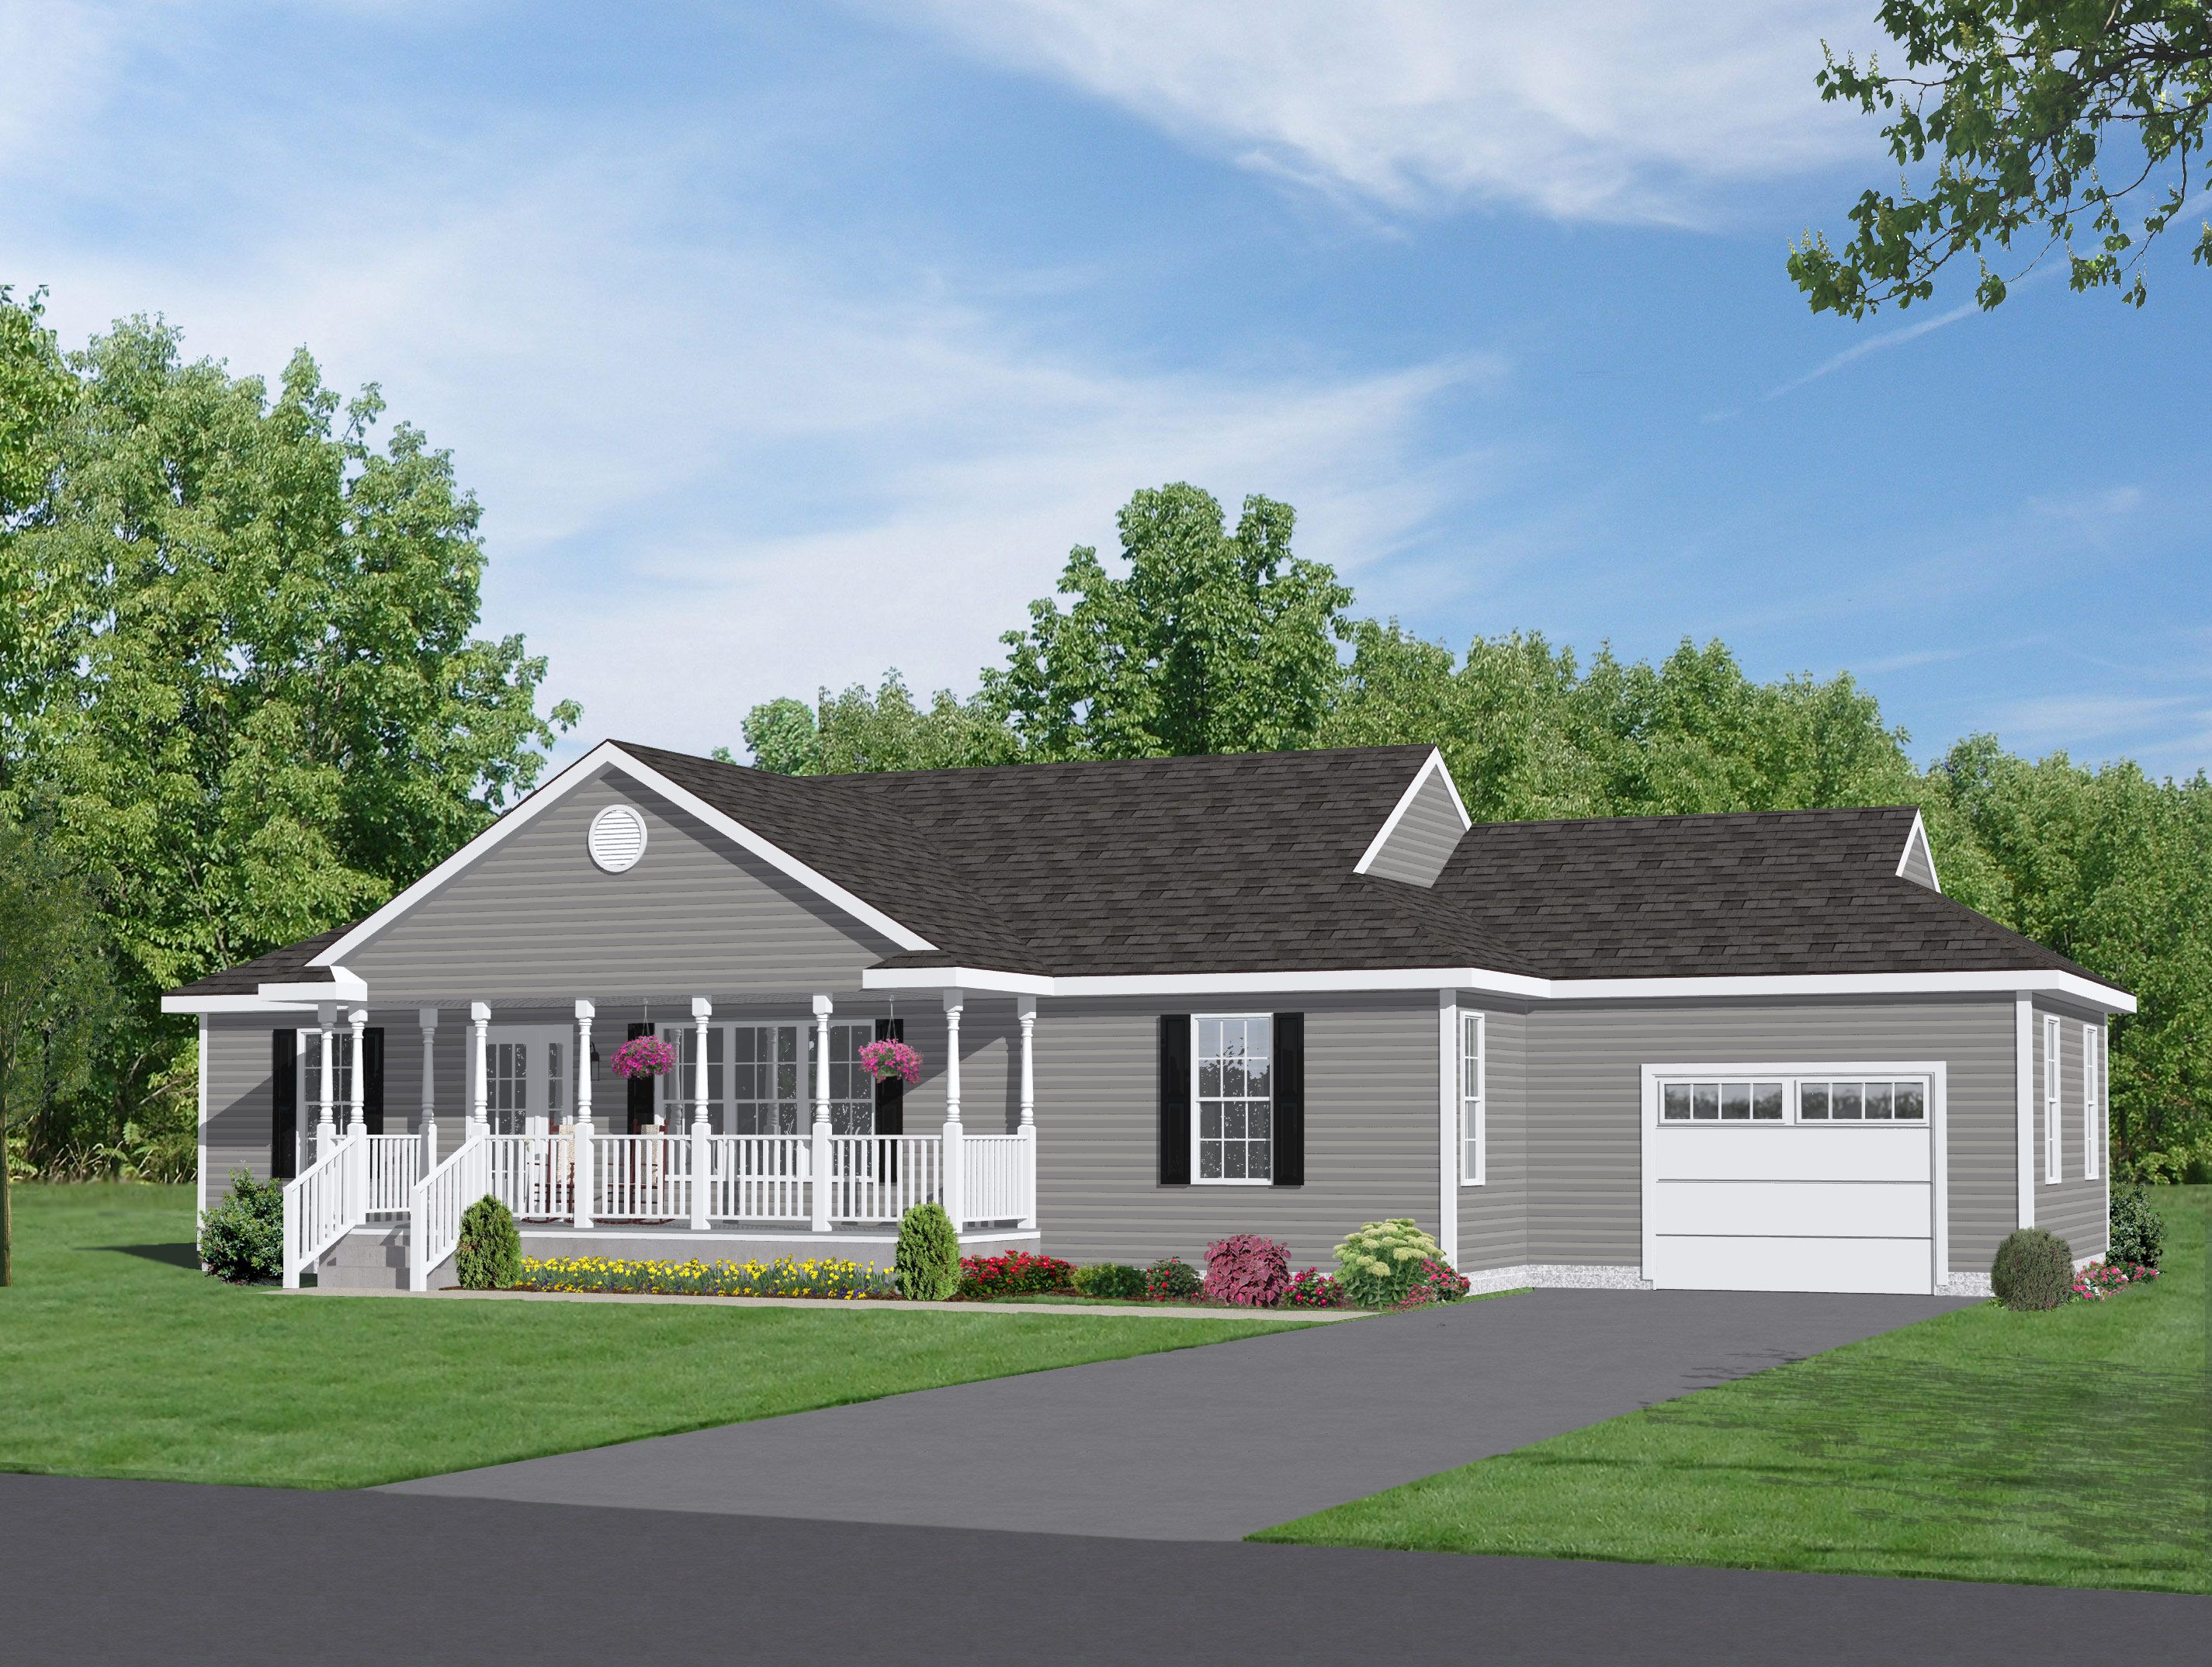 Rancher plans rancher plans two story house plans ranch for Basement floor plans for ranch style homes